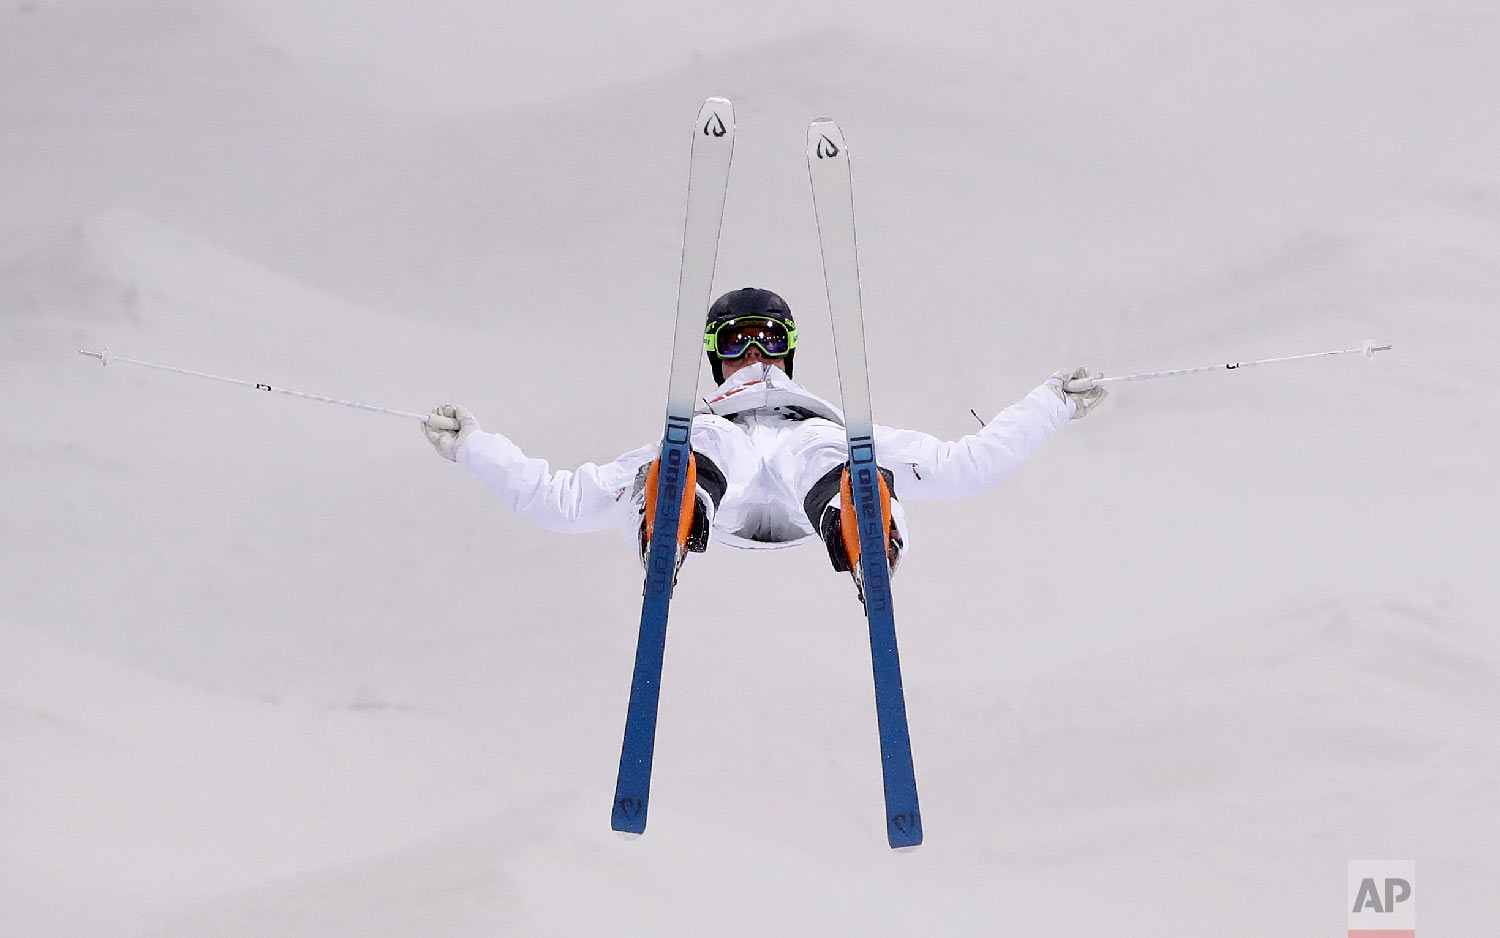 WalterWallberg, of Sweden, trains ahead of the 2018 Winter Olympics in Pyeongchang, South Korea, Wednesday, Feb. 7, 2018. (AP Photo/Gregory Bull)